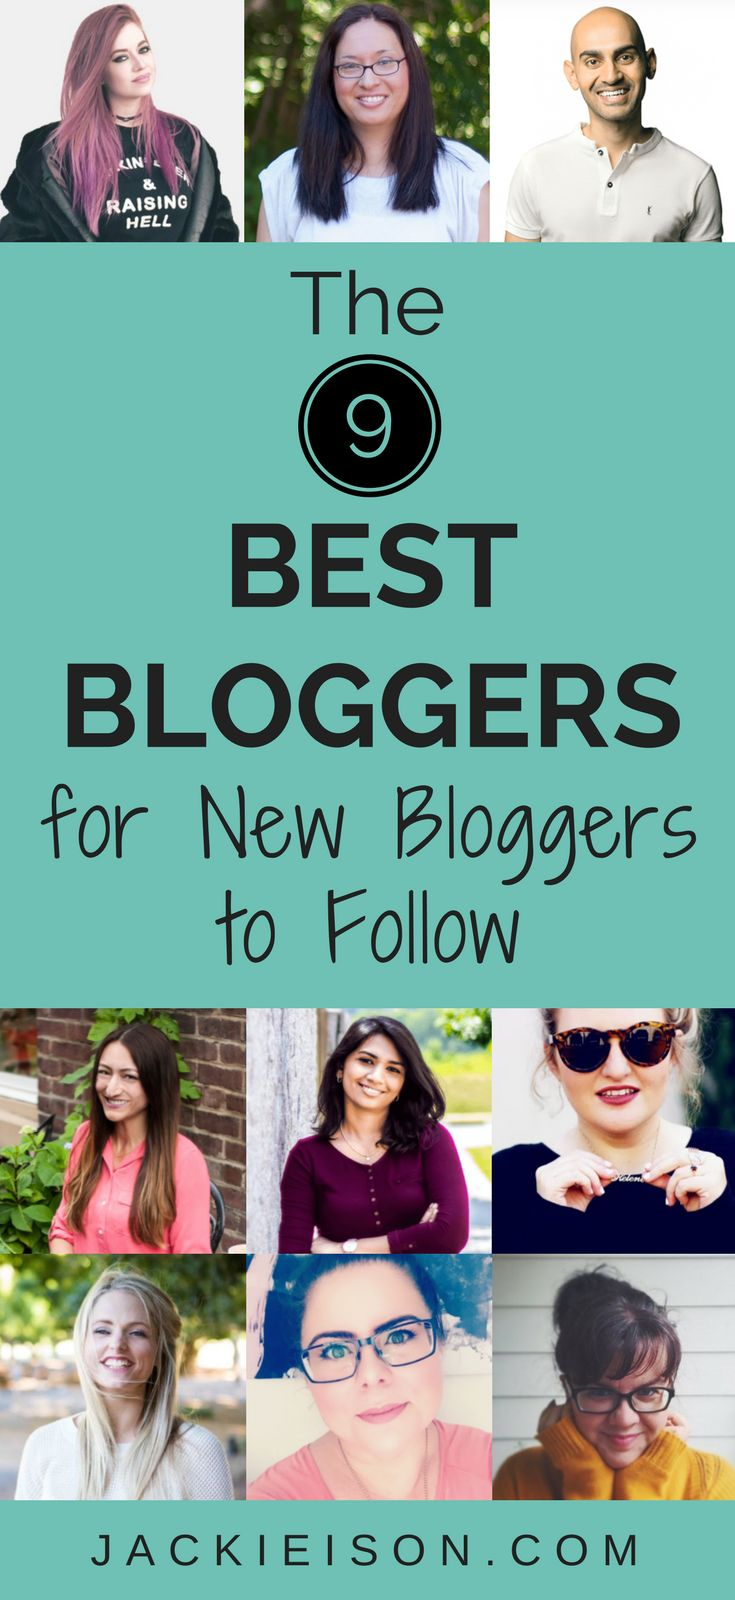 The 9 Best Bloggers for New Bloggers to Follow